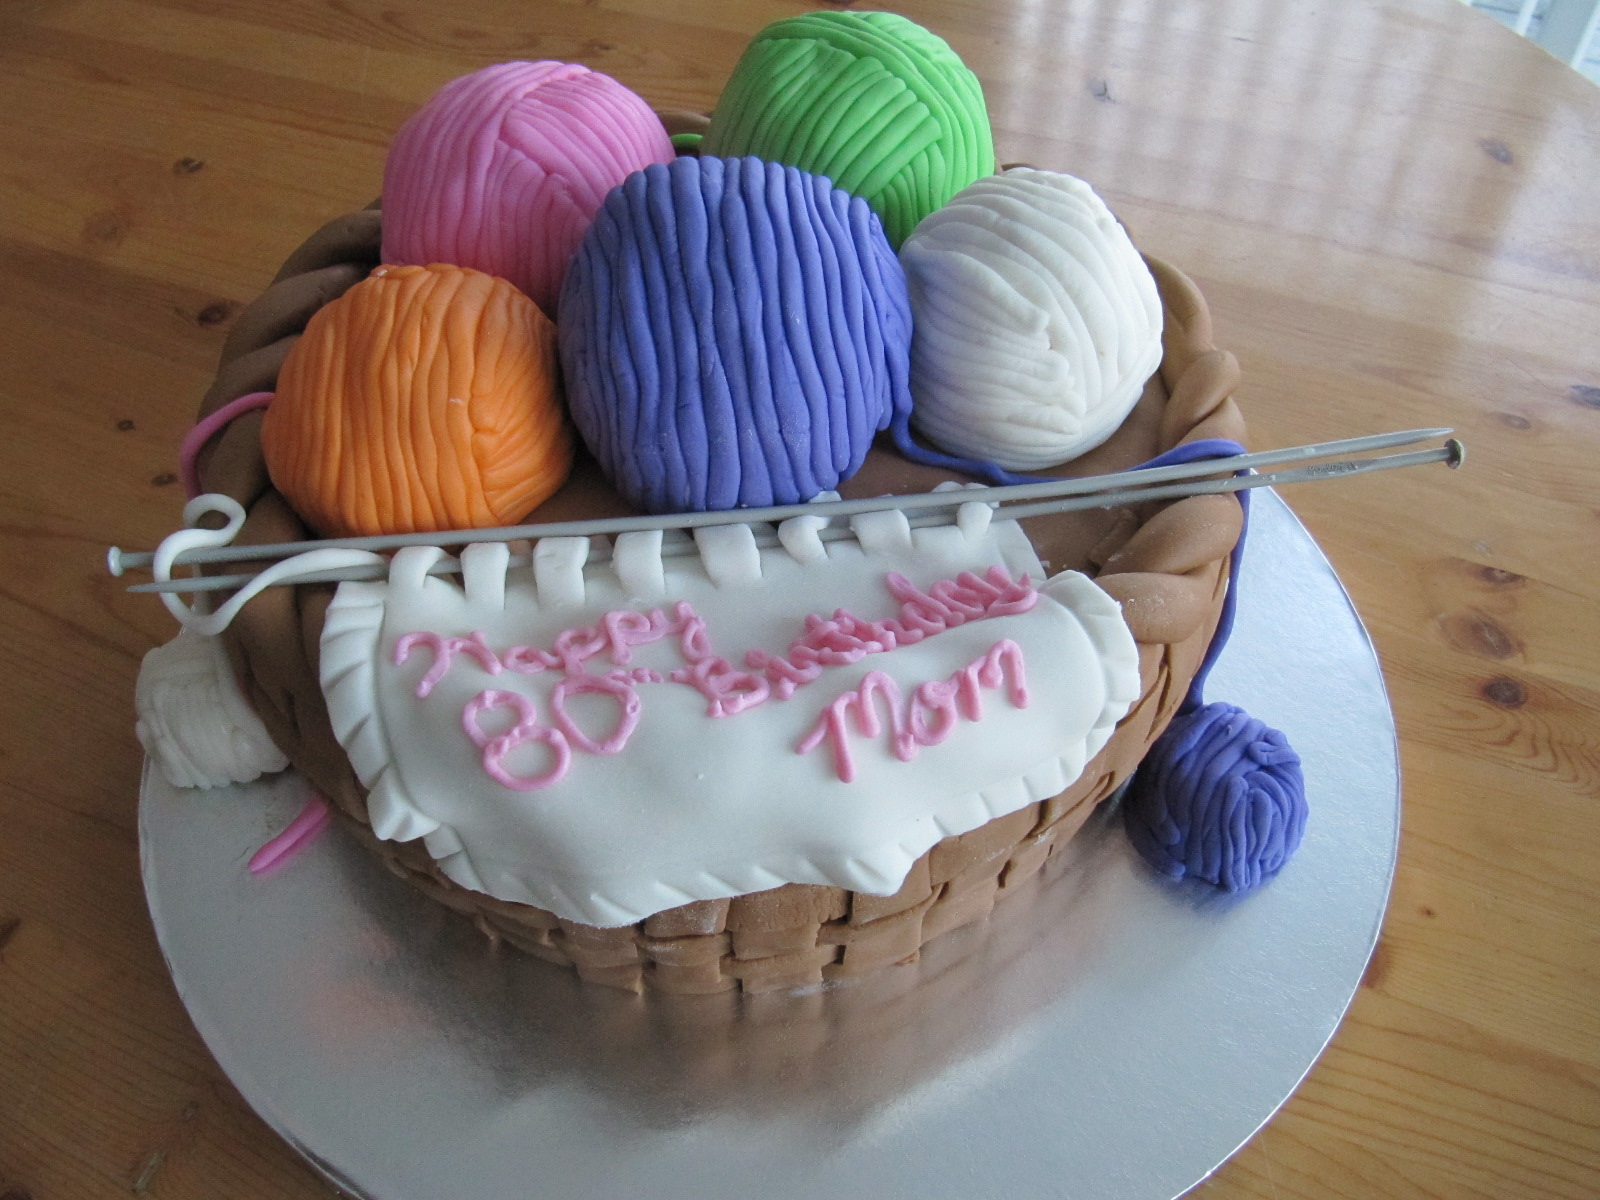 Knitting Cakes Images : Knitting basket cake u erica s edibles